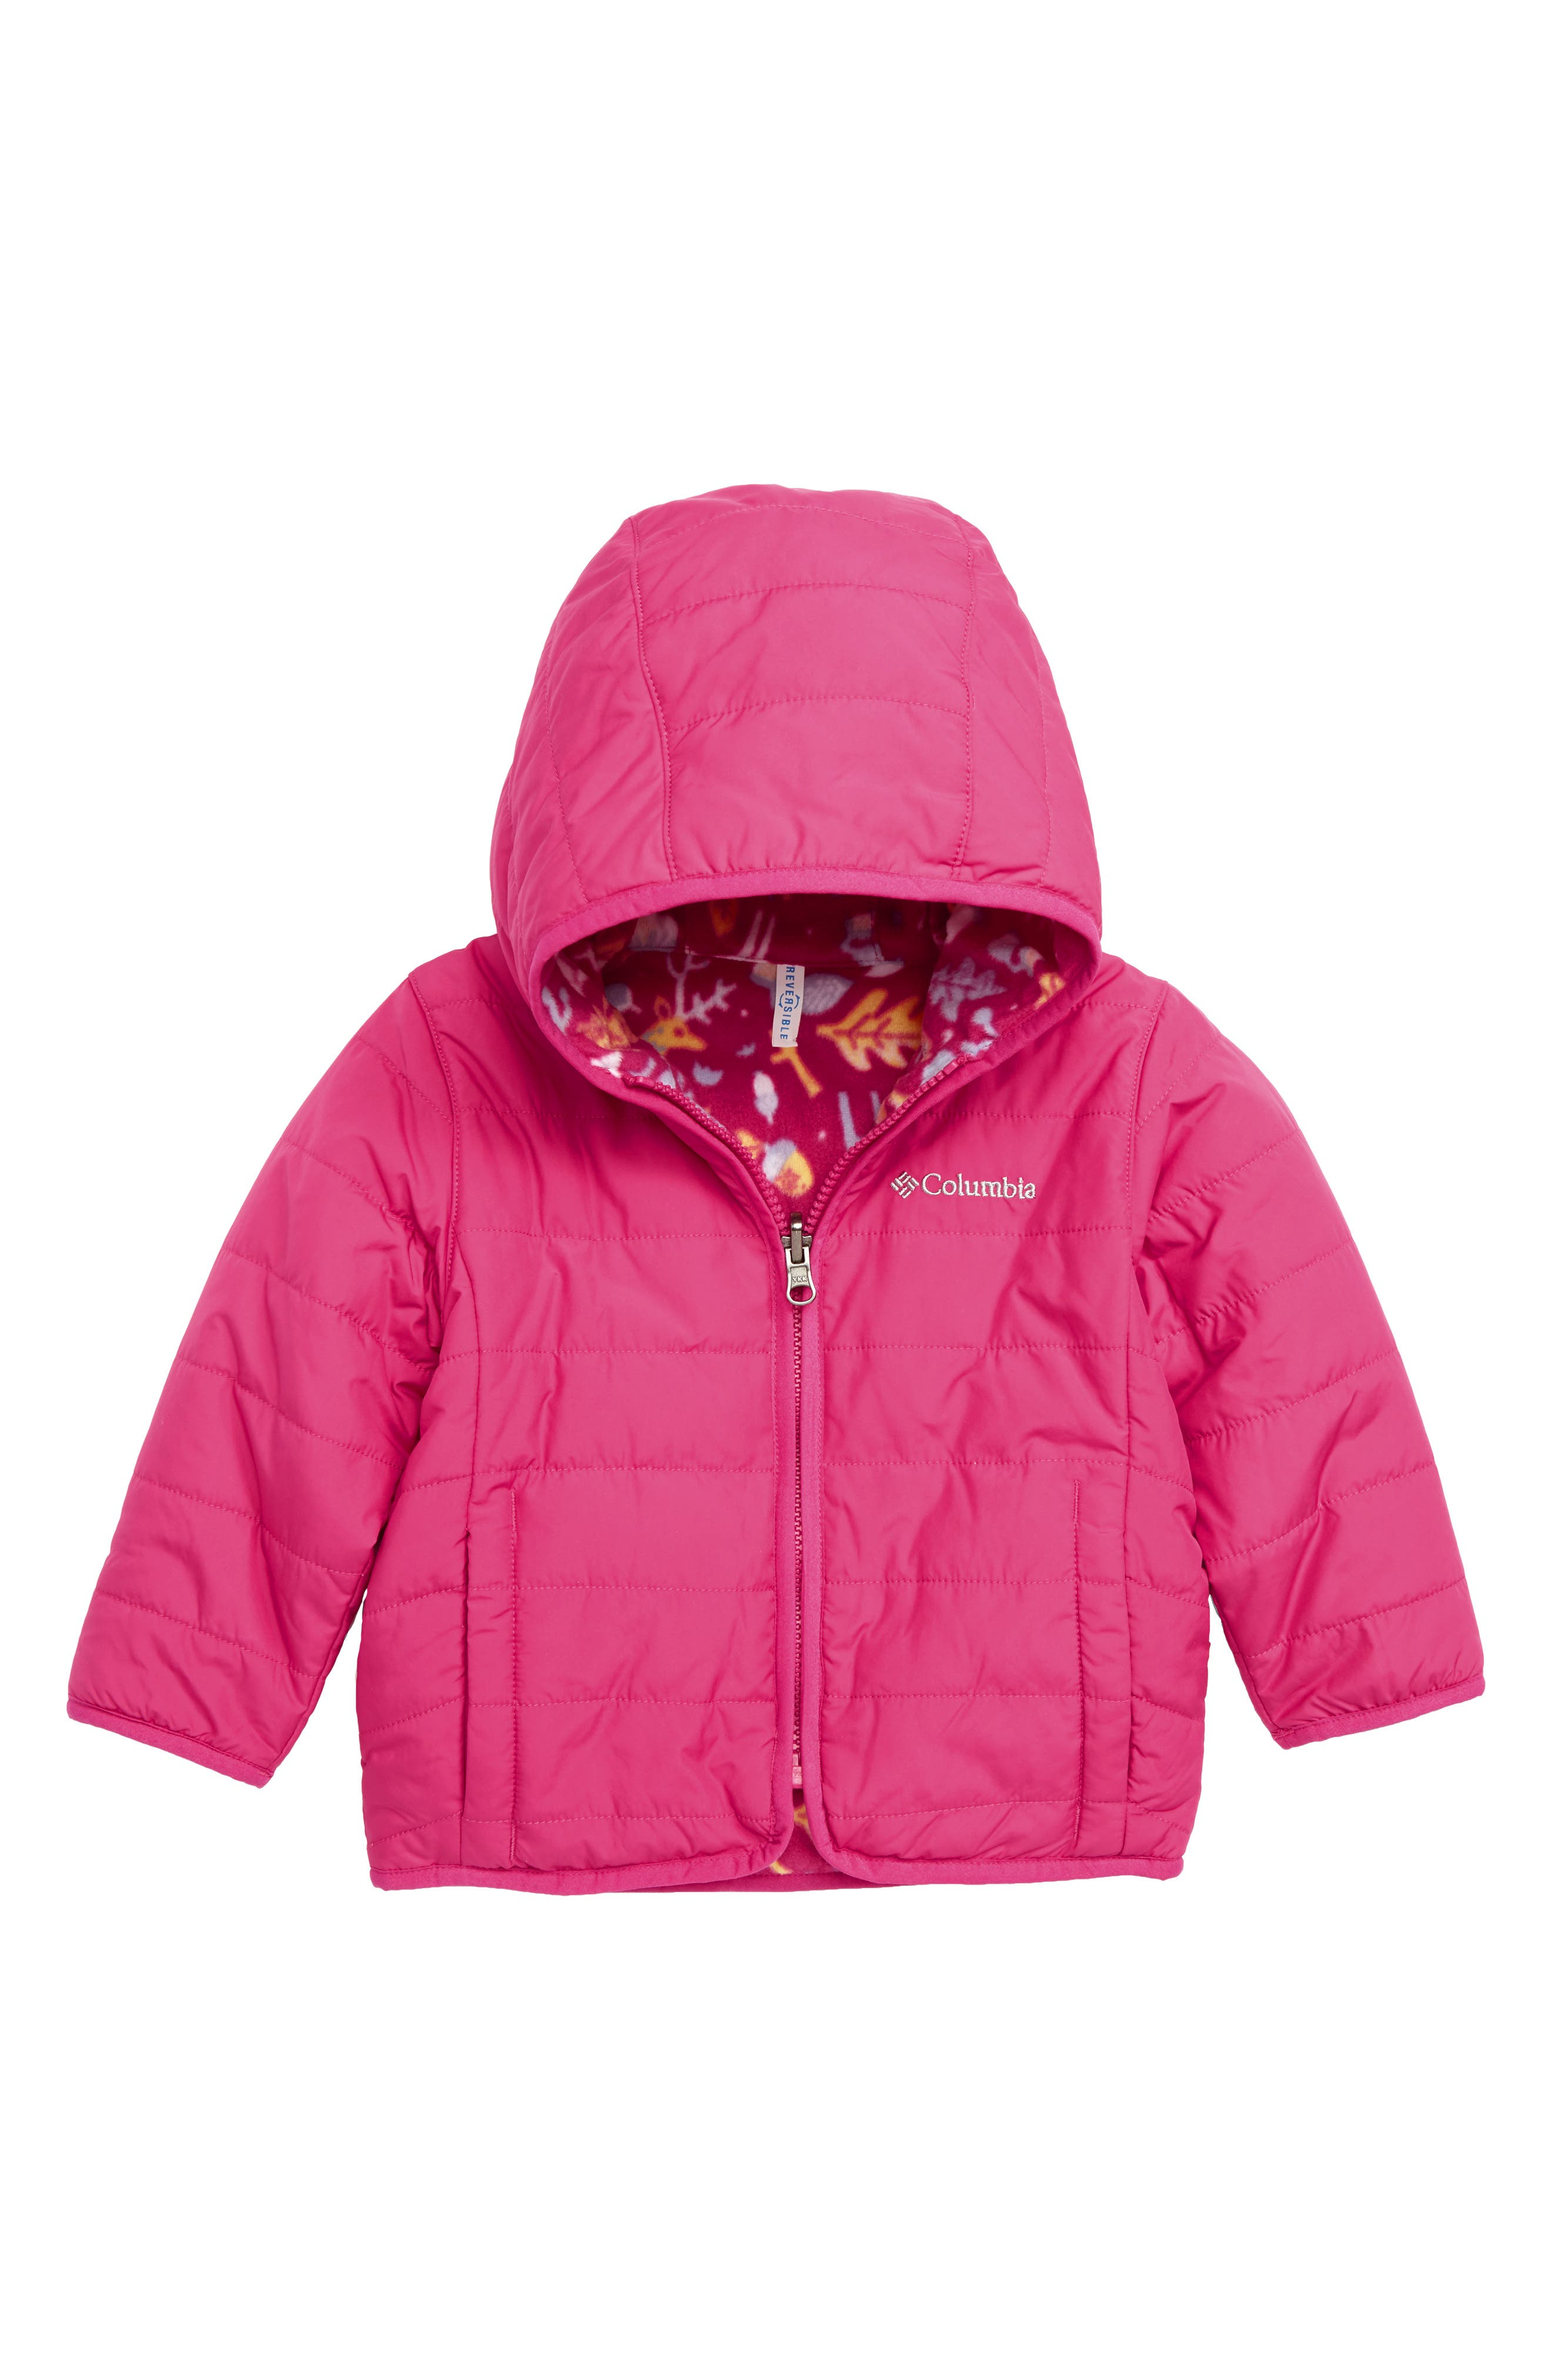 Double Trouble Reversible Water-Resistant Hooded Jacket,                         Main,                         color, CACTUS PINK